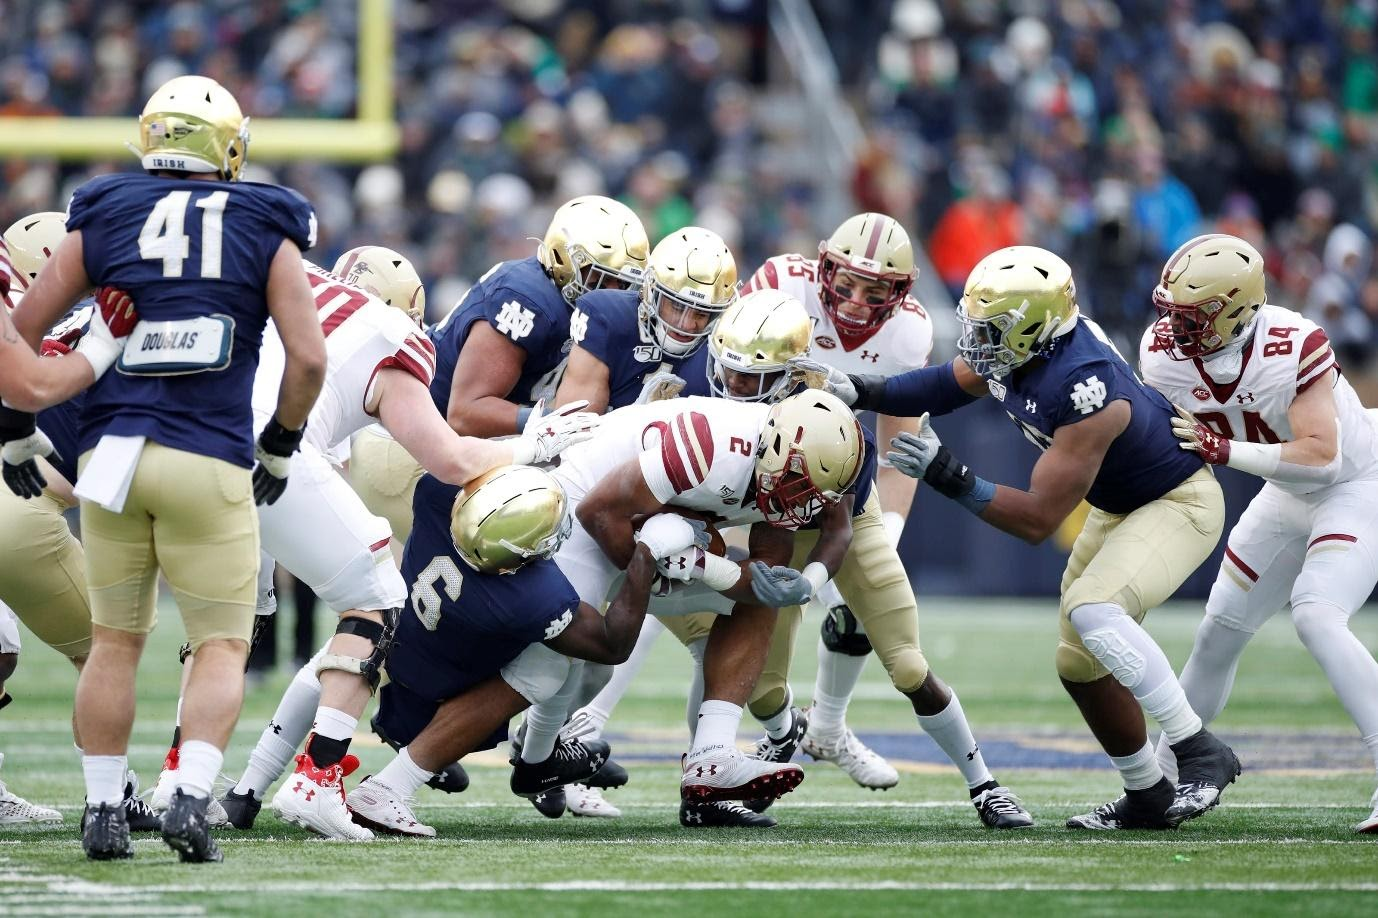 College Football: Why aren't there more Catholic D-I FBS programs?